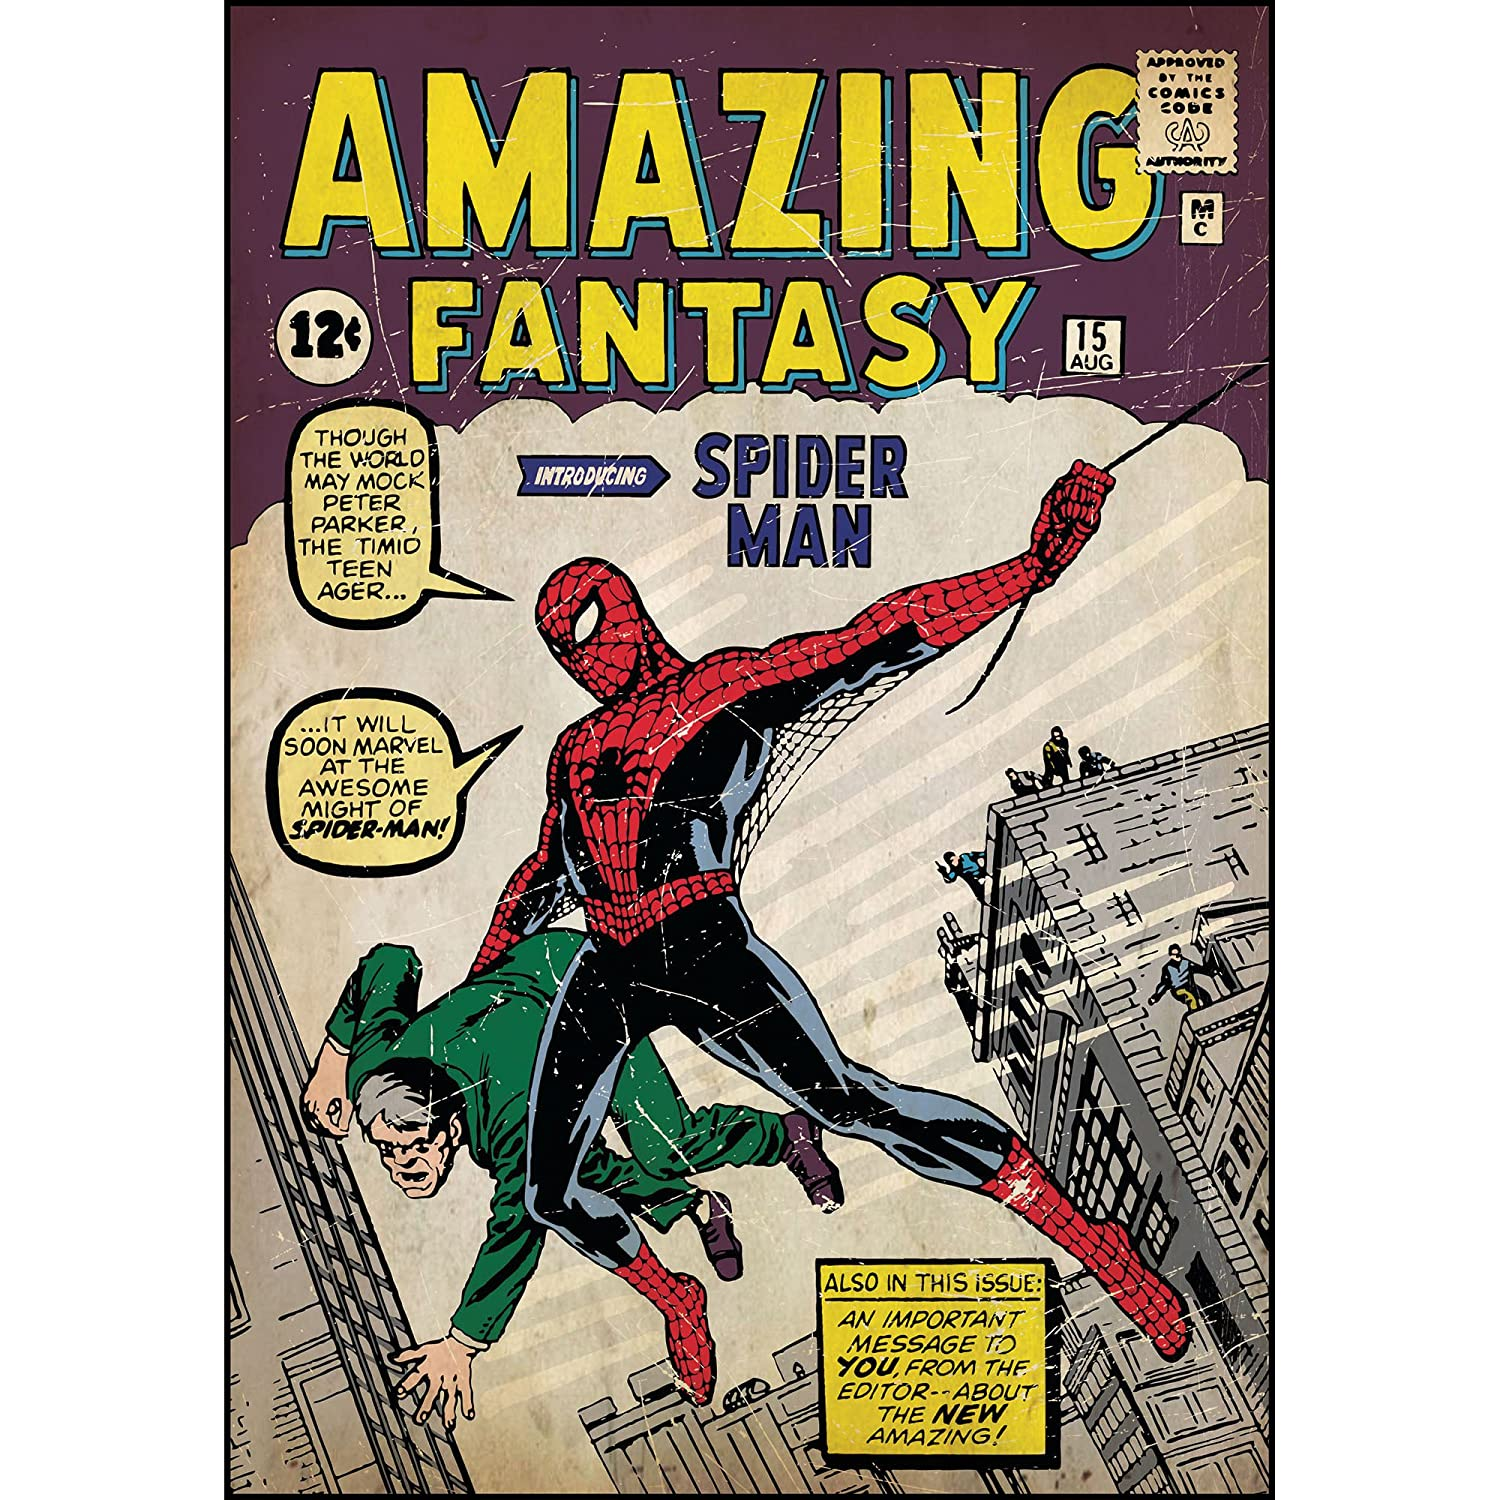 Spiderman Peel and Stick Comic Book Cover